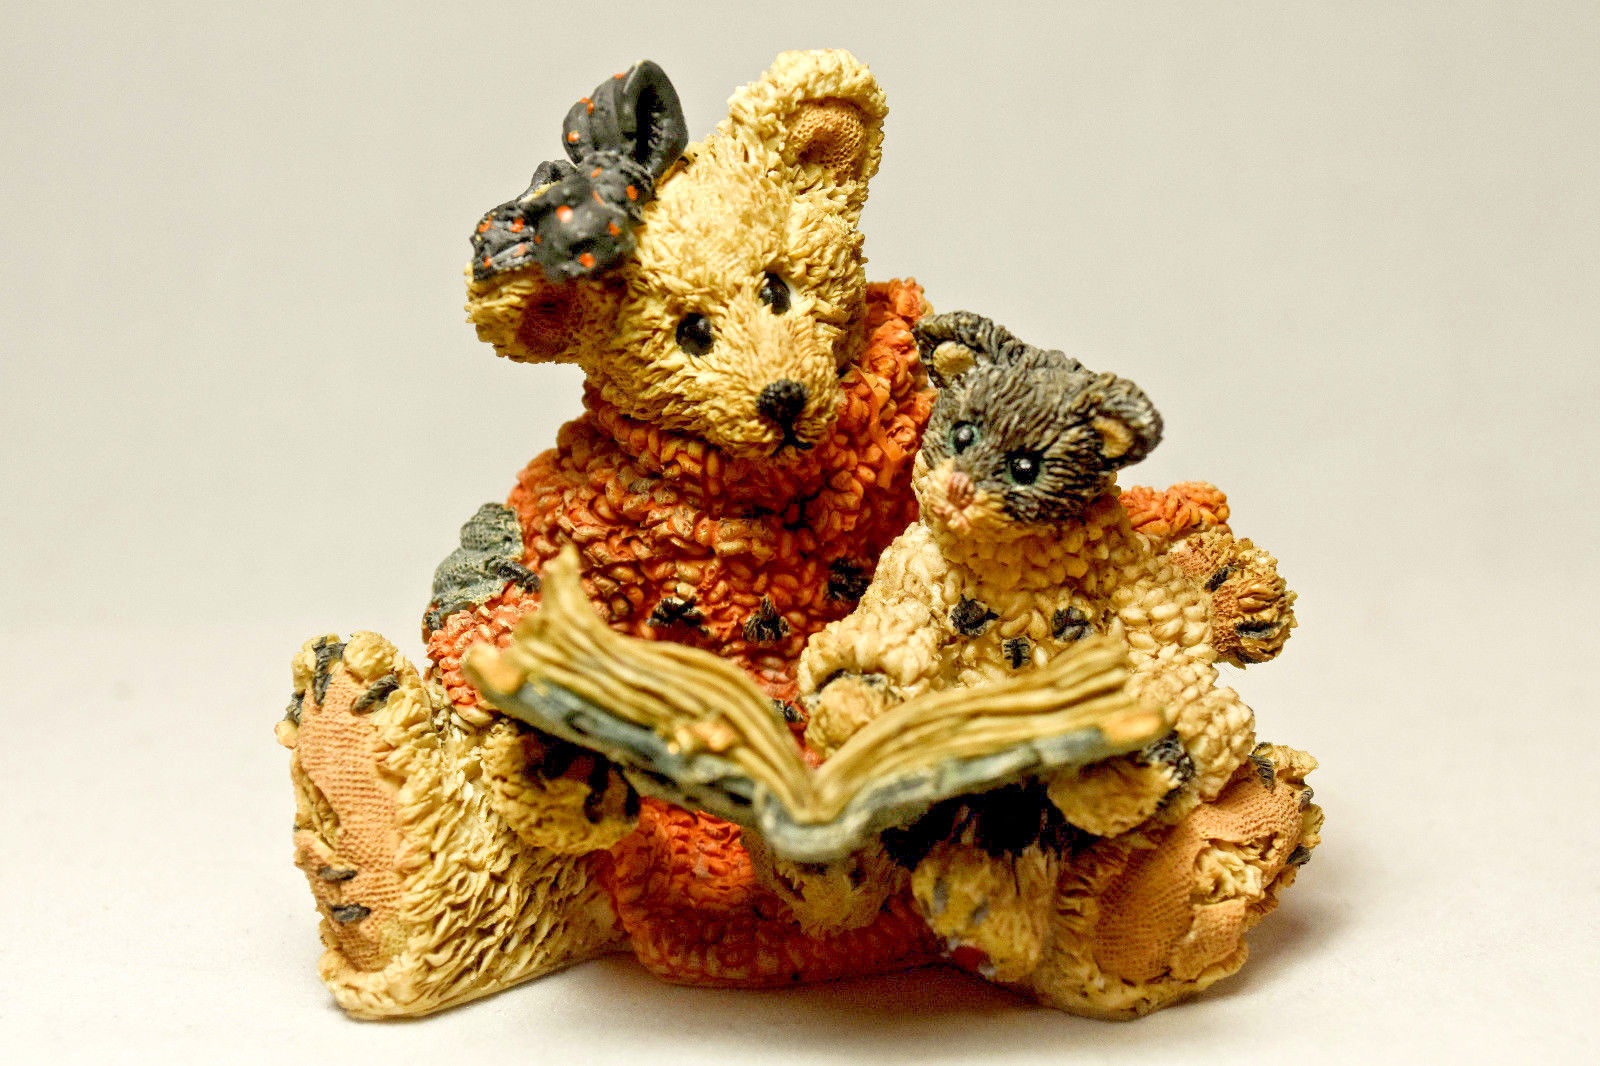 Primary image for Boyds Bears: Agatha & Shelly - Scardy Cat - Style 2246